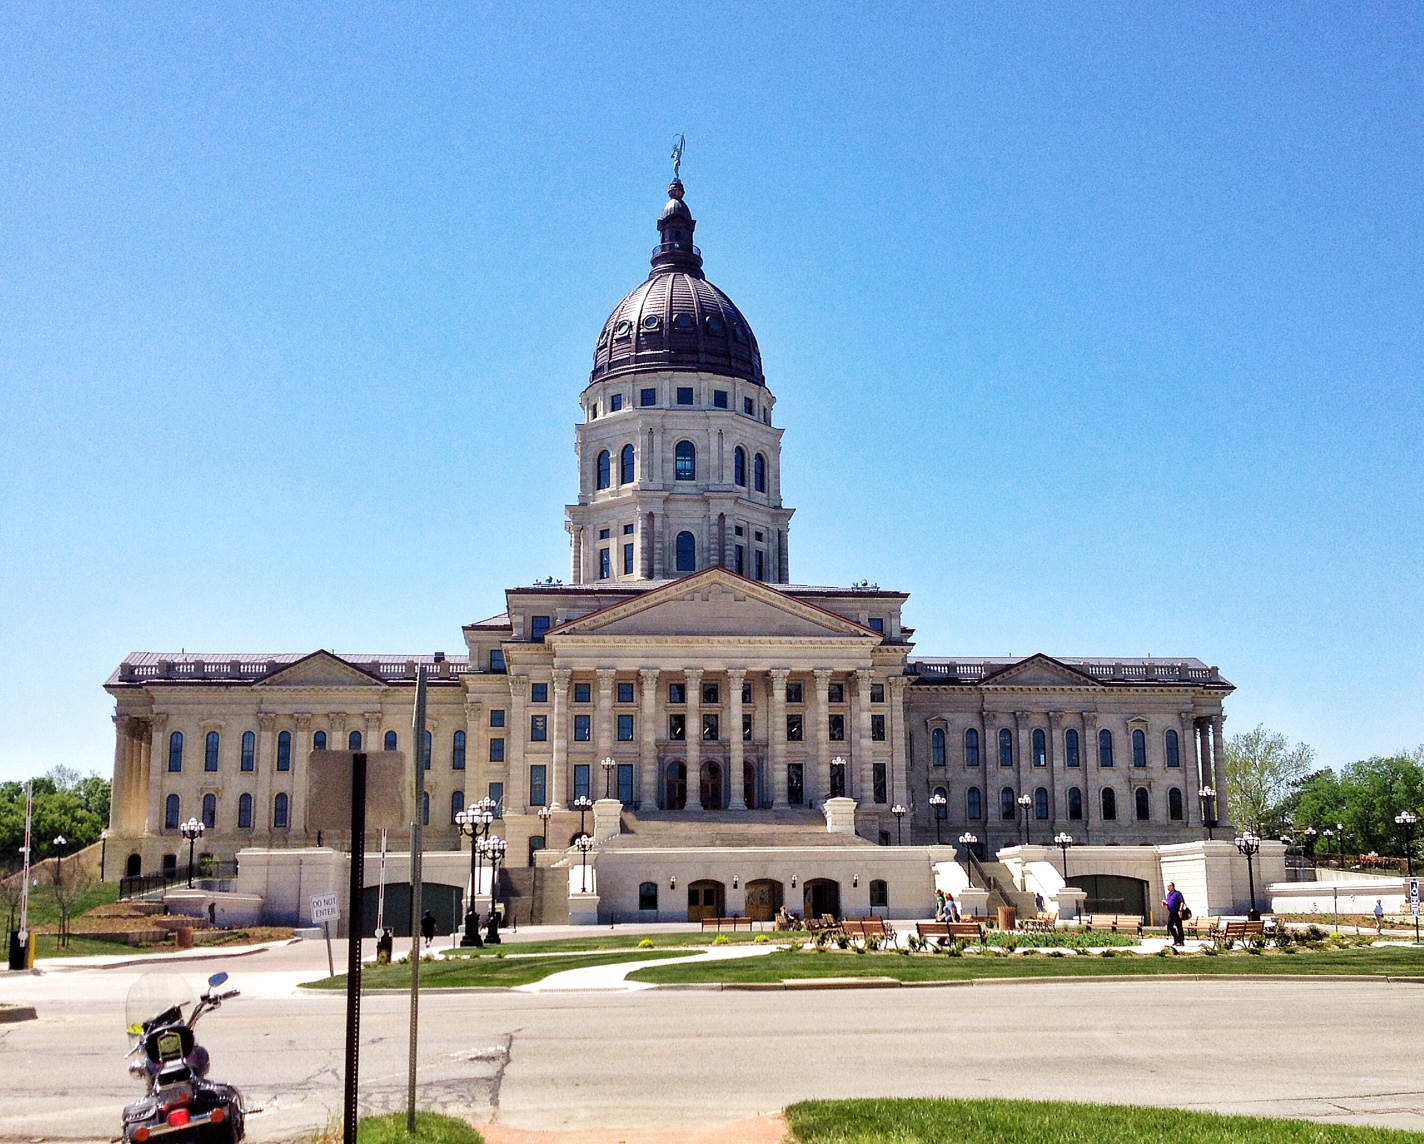 Kansas Statehouse (File photo by J. Schafer)